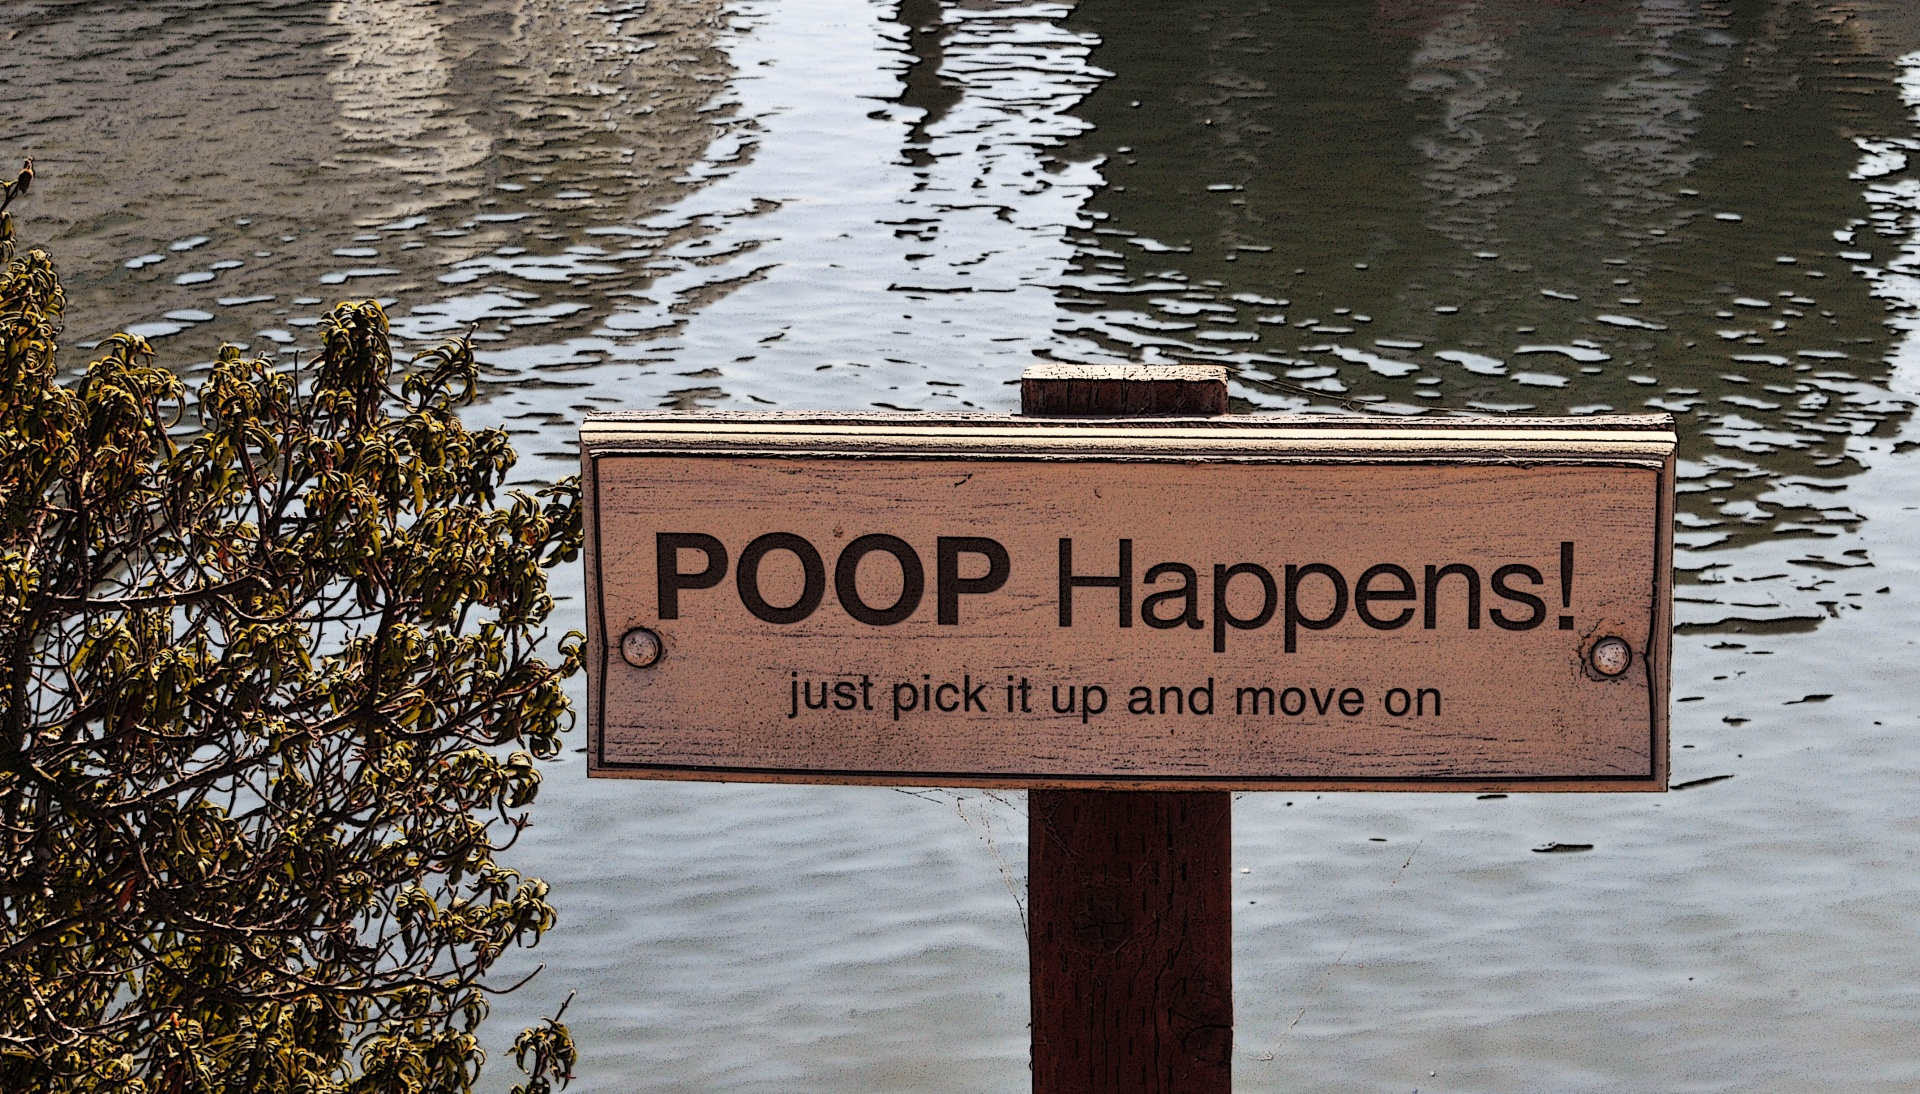 Bathroom Signs No Pooping poop 101: a beginner's guide to reading your own poop - the verge